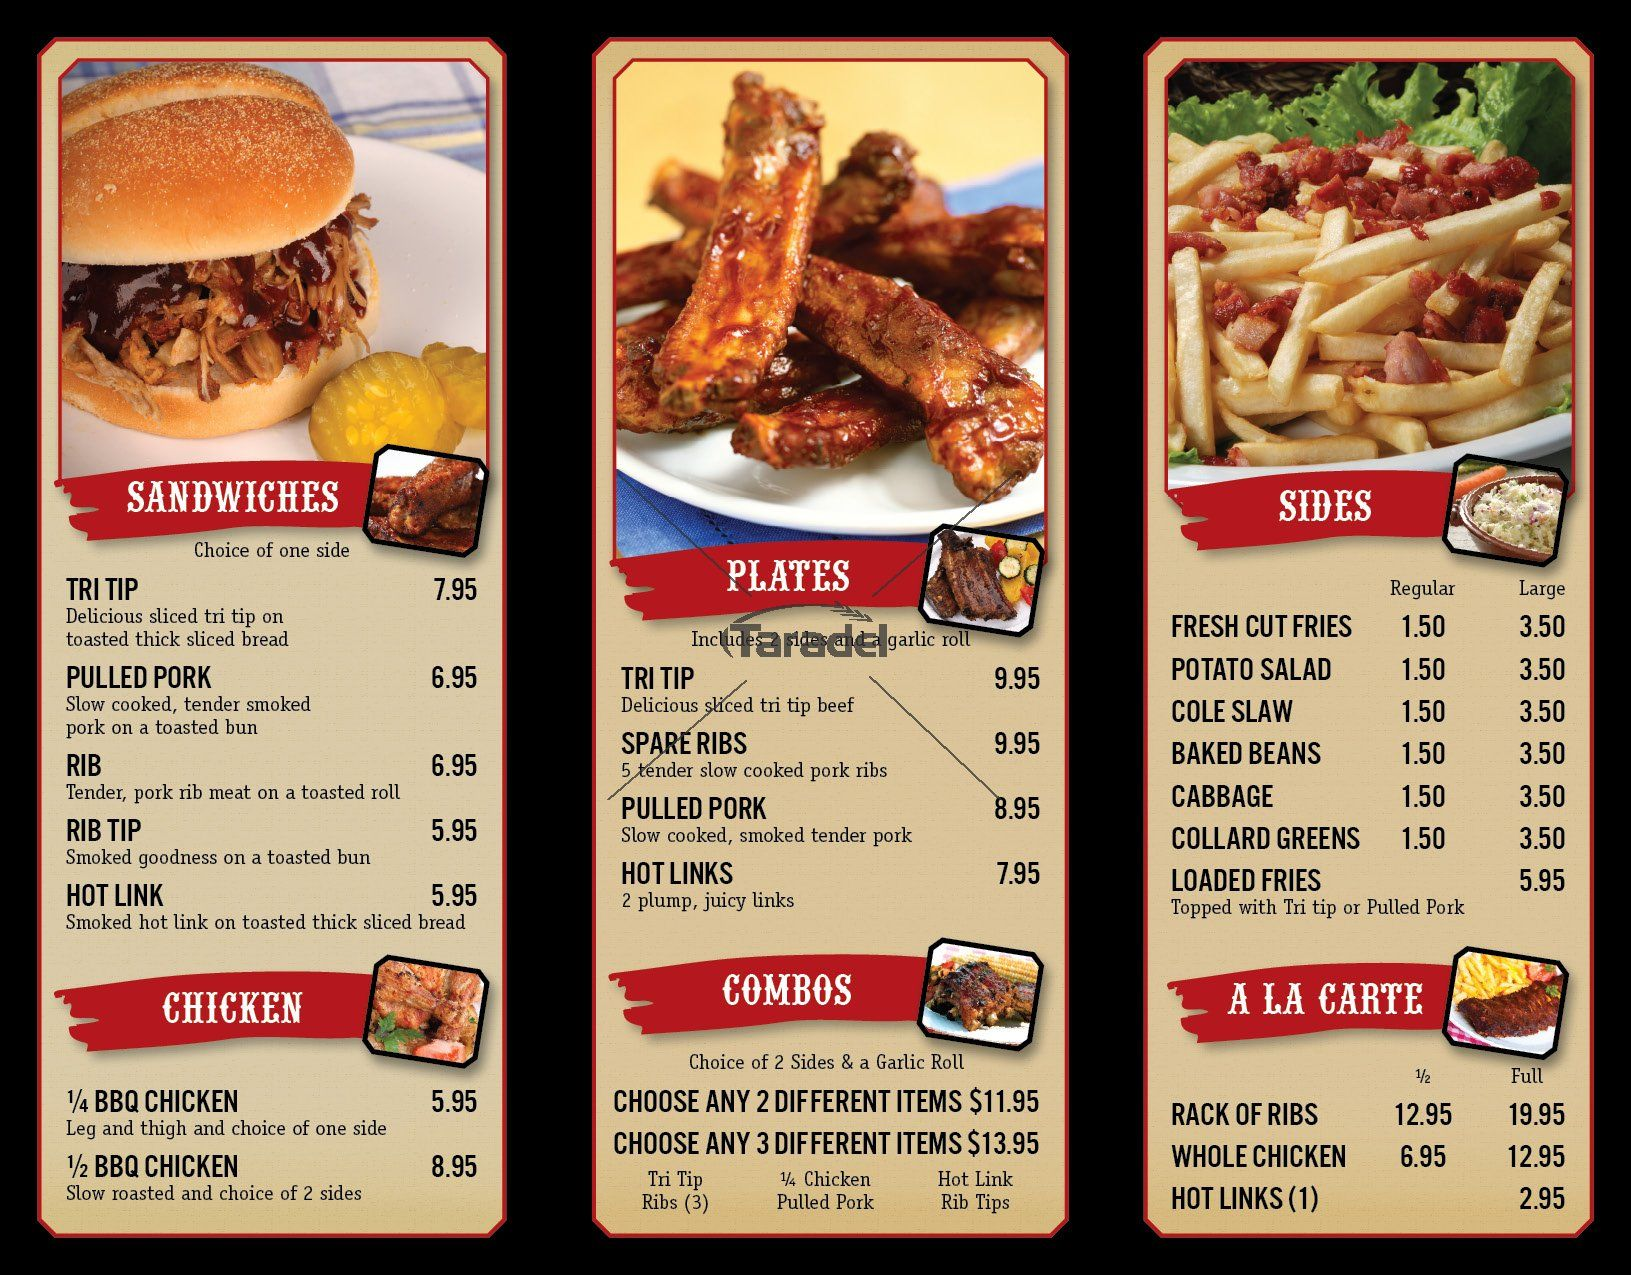 menu design style best menu designs for restaurants menu